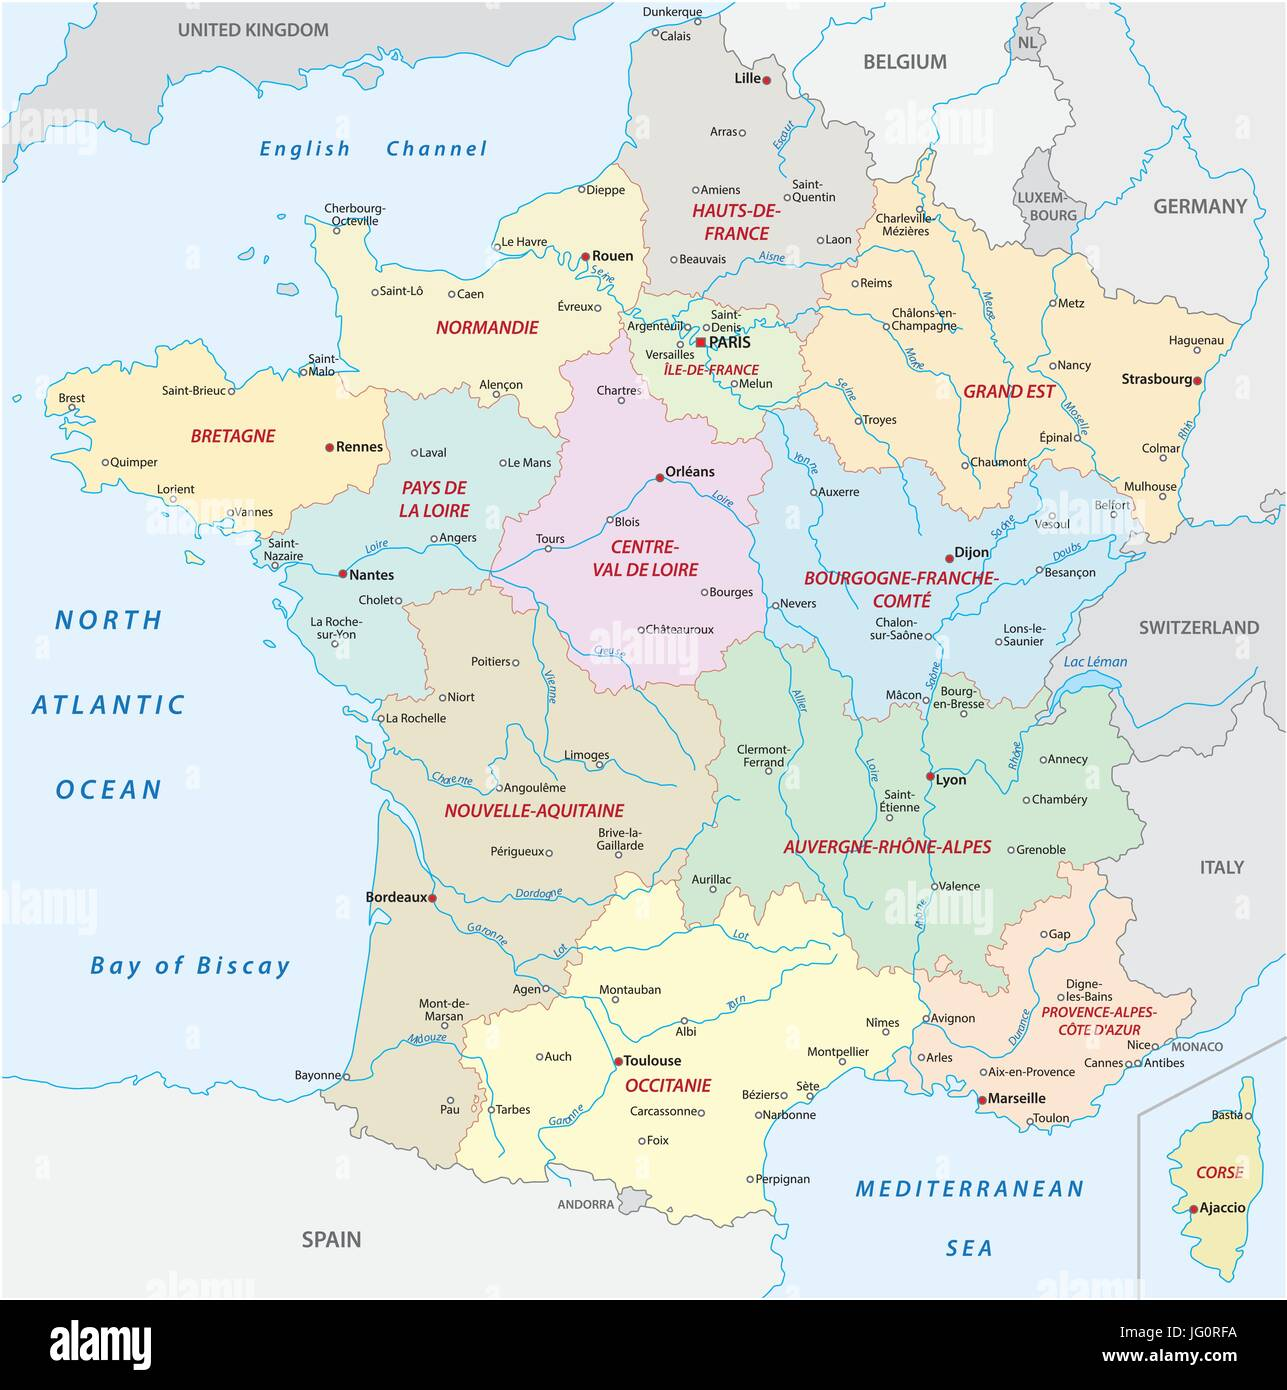 Map Of France Regions With Cities.France Map With The New Regions And The Most Important Cities And